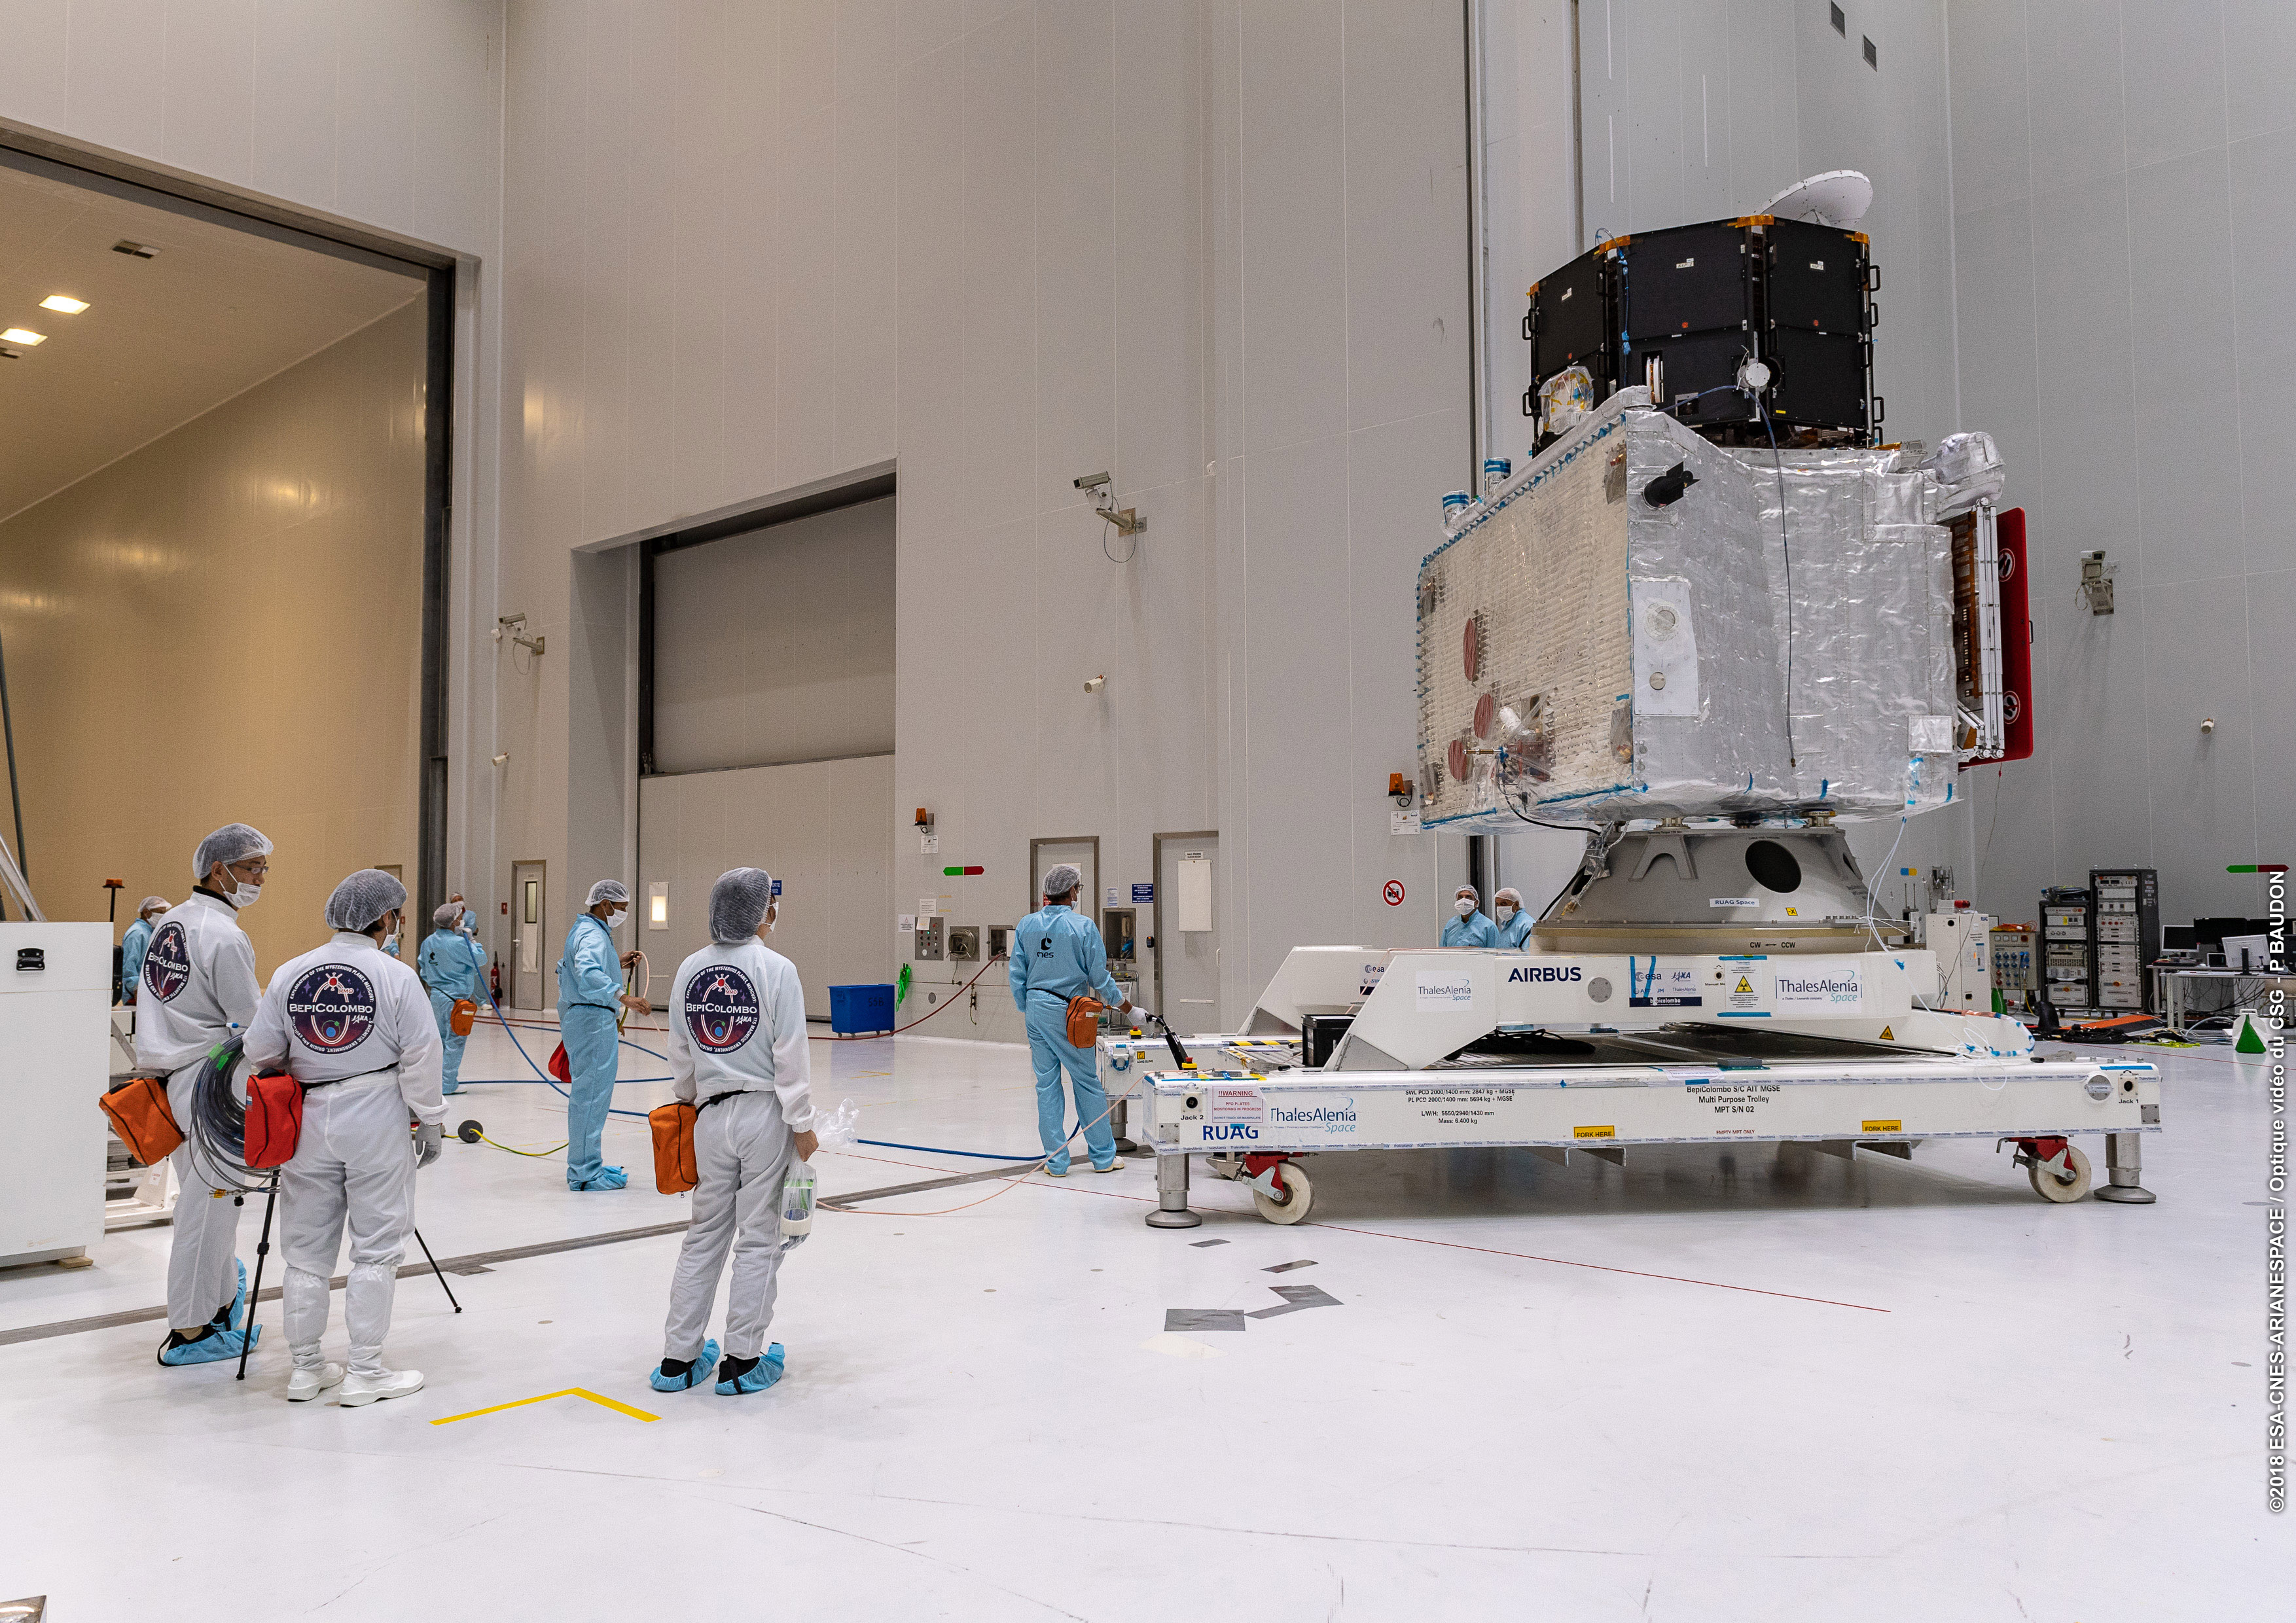 1567214047316-BepiColombo_ministack_on_the_move_2.jpg